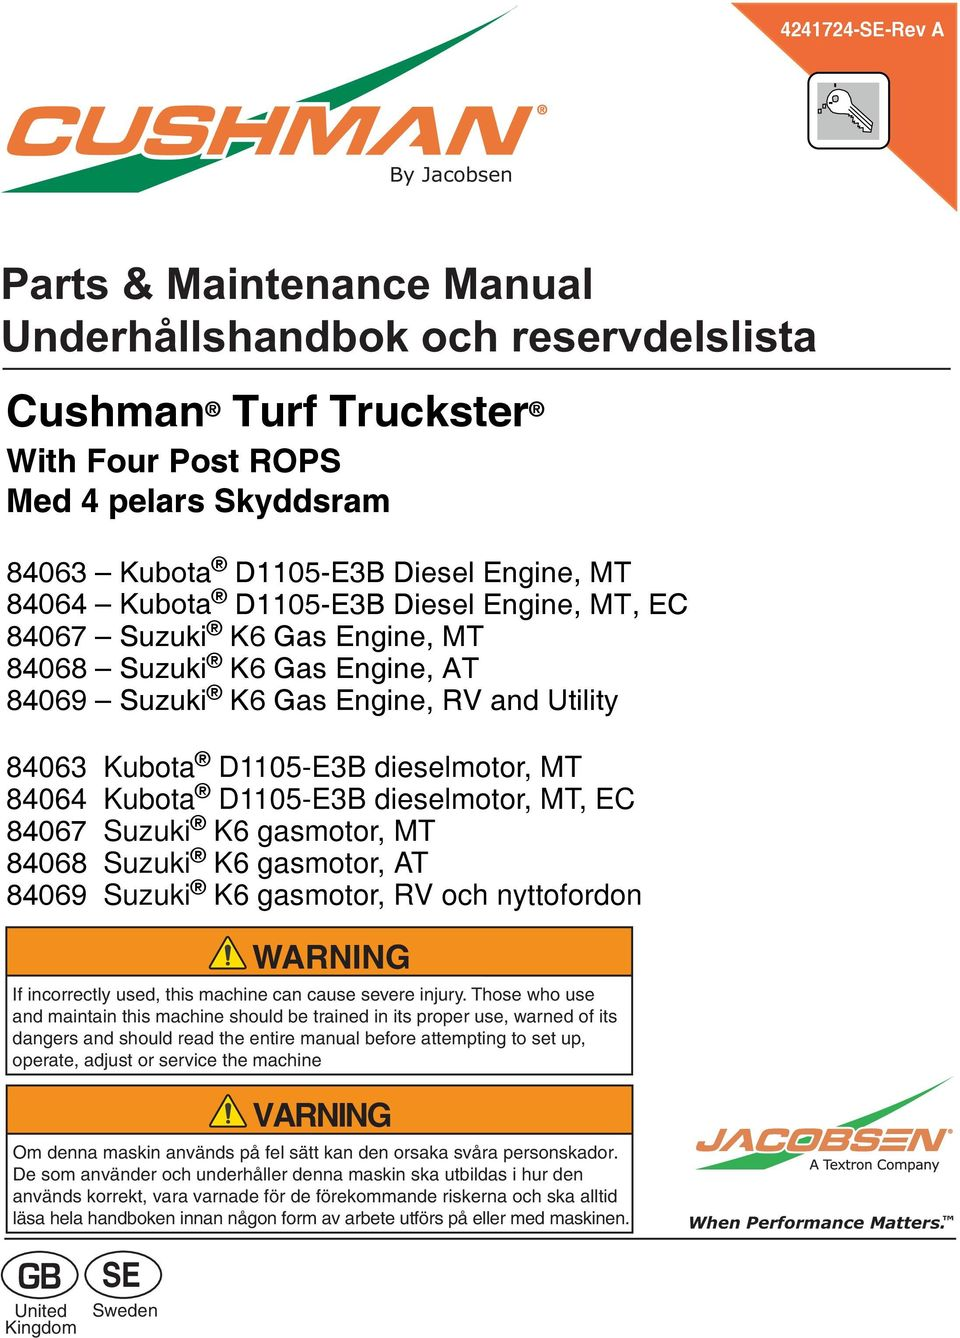 Kubota D1105-E3B dieselmotor, MT, EC 84067 Suzuki K6 gasmotor, MT 84068 Suzuki K6 gasmotor, AT 84069 Suzuki K6 gasmotor, RV och nyttofordon WARNING If incorrectly used, this machine can cause severe